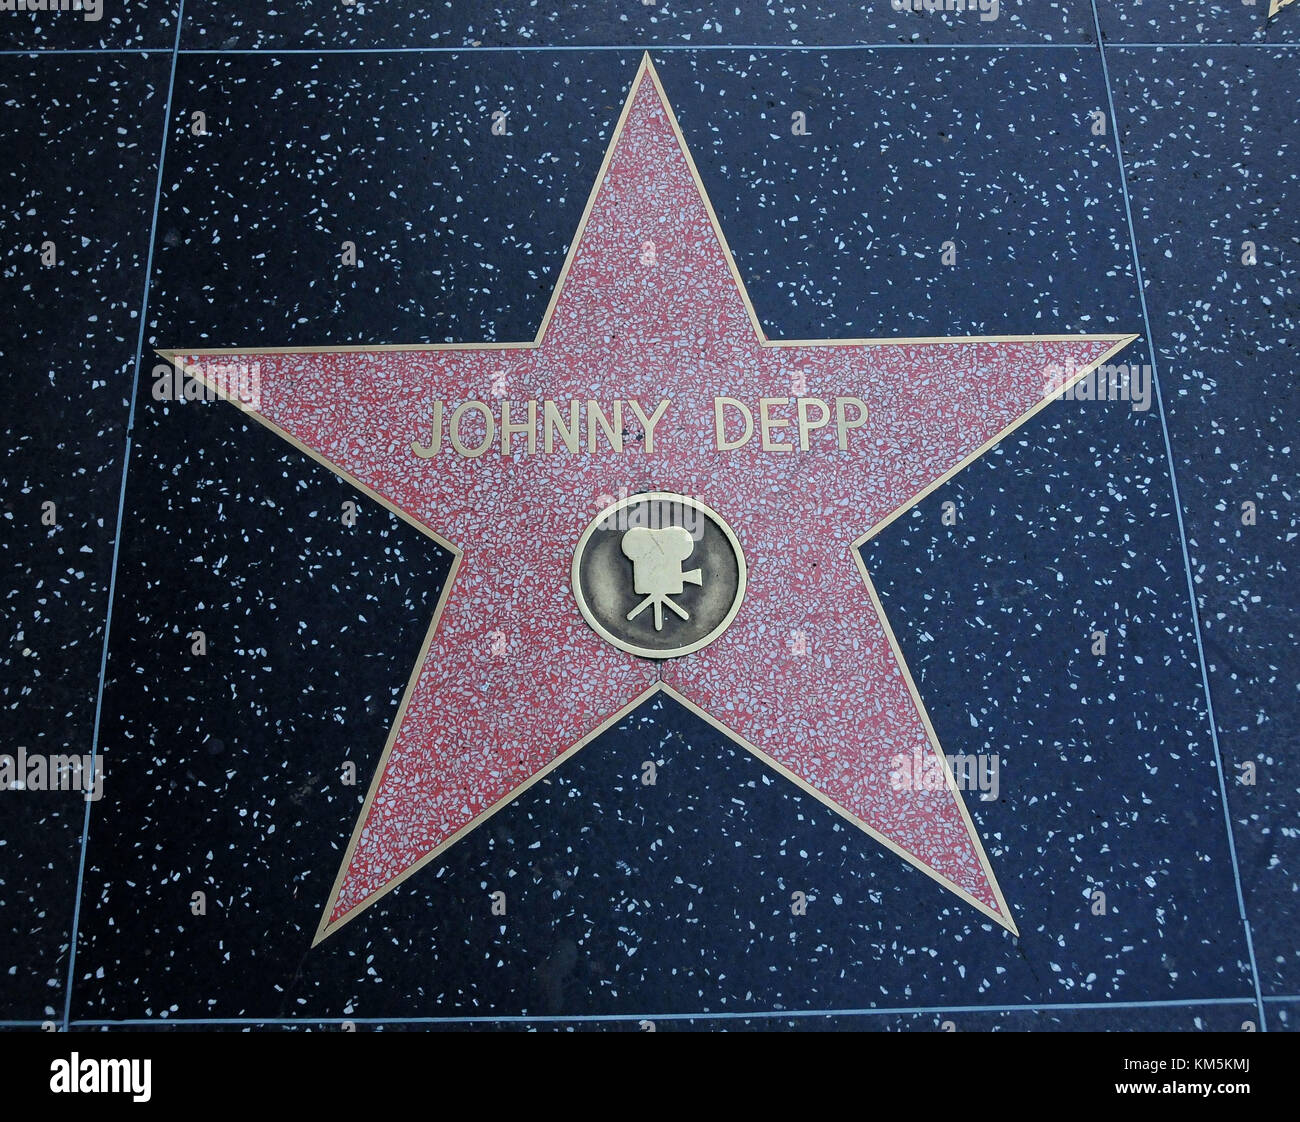 HOLLYWOOD, CA - DECEMBER 4: A general view of atmosphere of Johnny Depp Star on the Hollywood Walk Of Fame on Hollywood - Stock Image